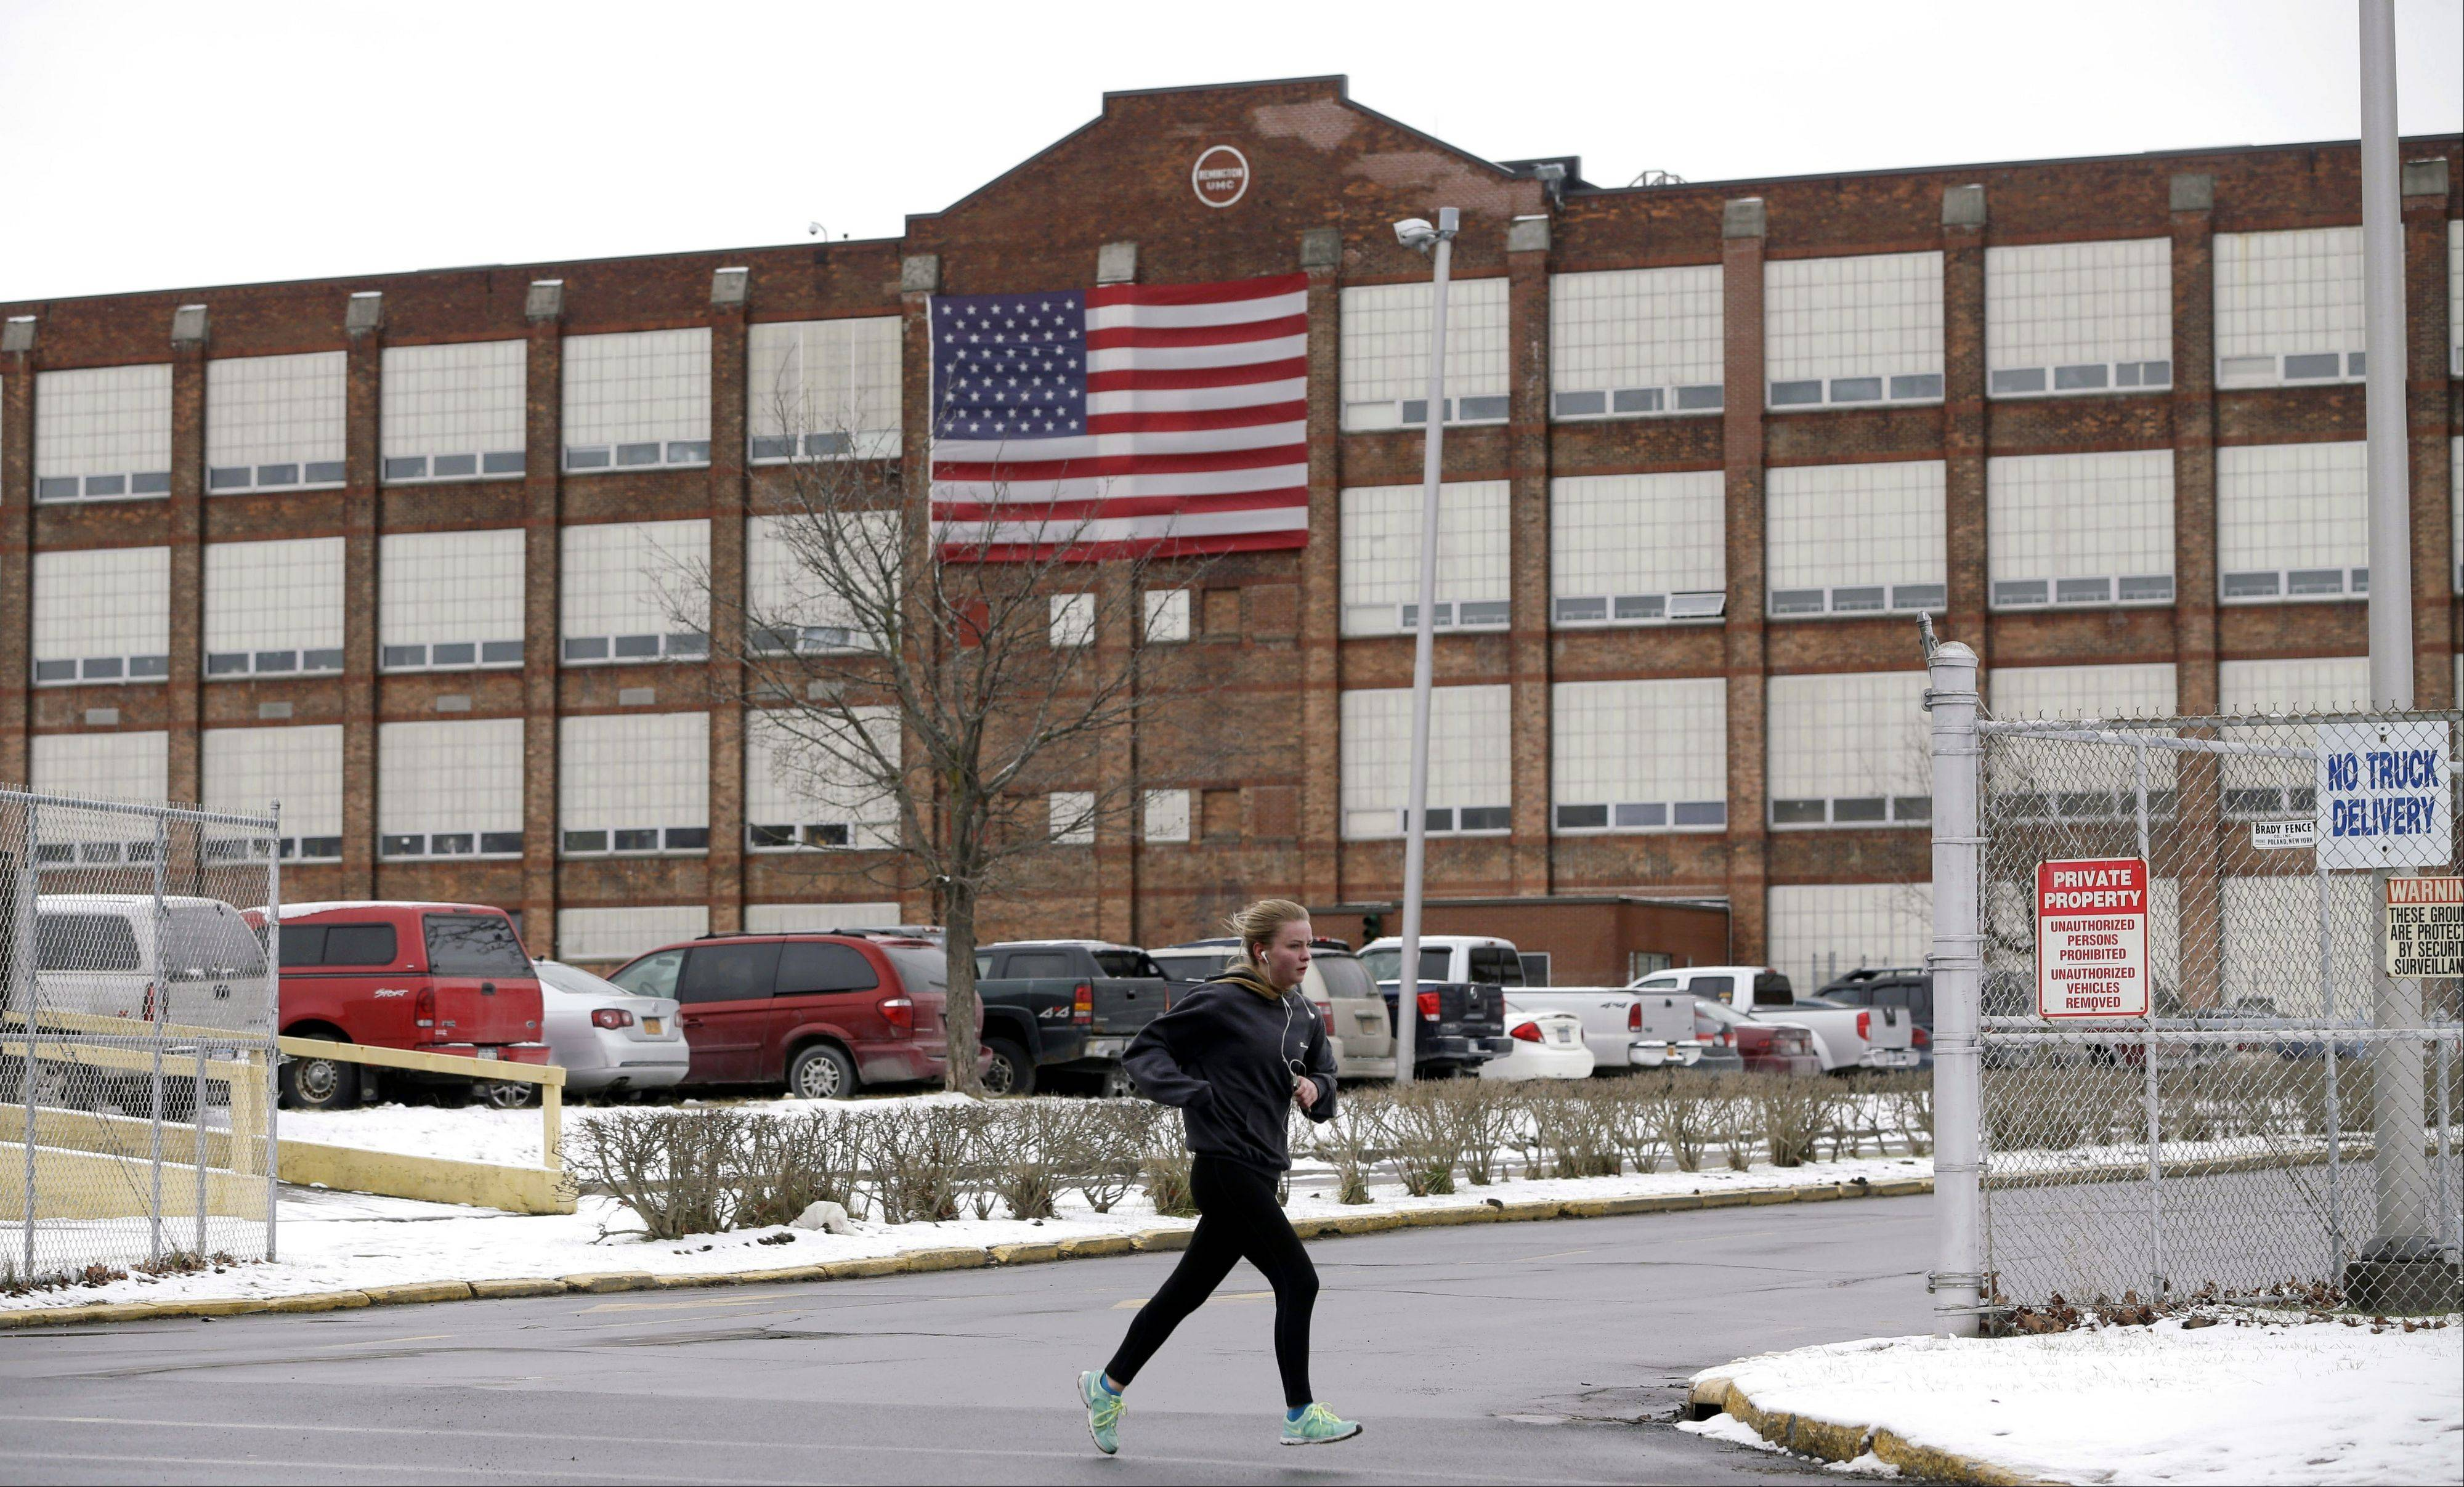 This is the Remington Arms Company in Ilion, N.Y., where residents of this blue-collar stretch of the Mohawk Valley are defending the gun maker after New York lawmakers banned the sale of semi-automatic assault-style rifles like the Bushmaster weapon made here.